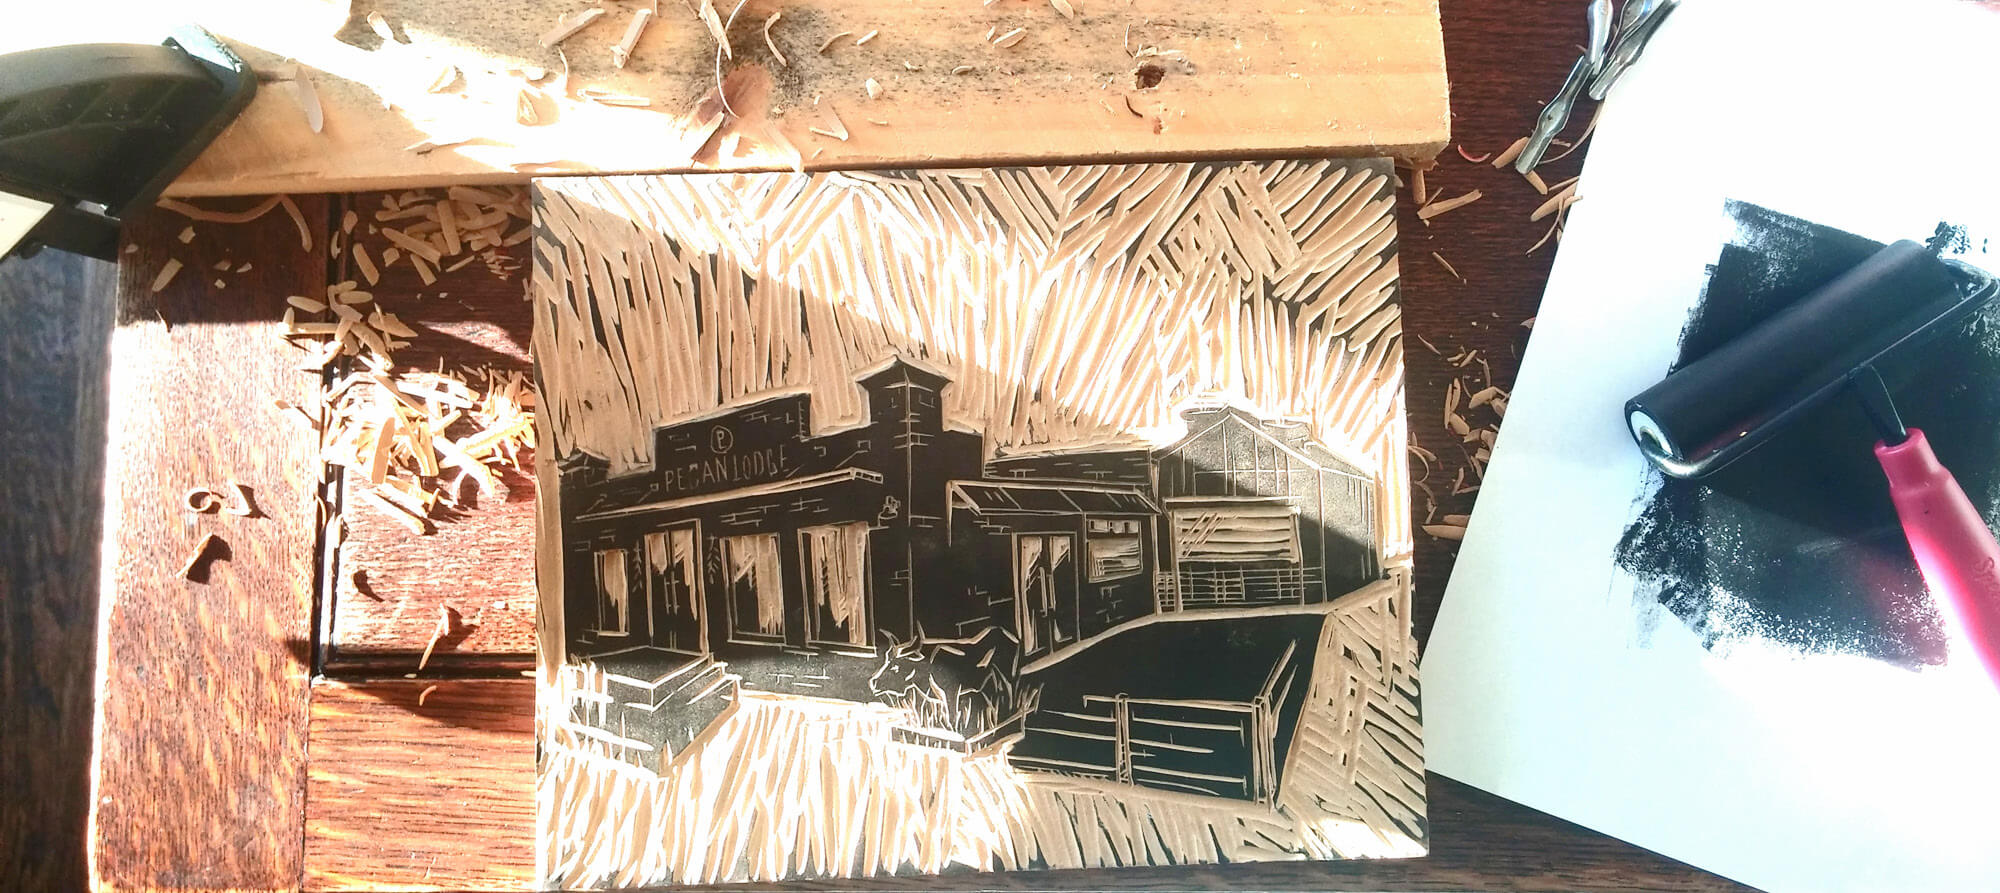 Pecan Lodge lodge wood cut